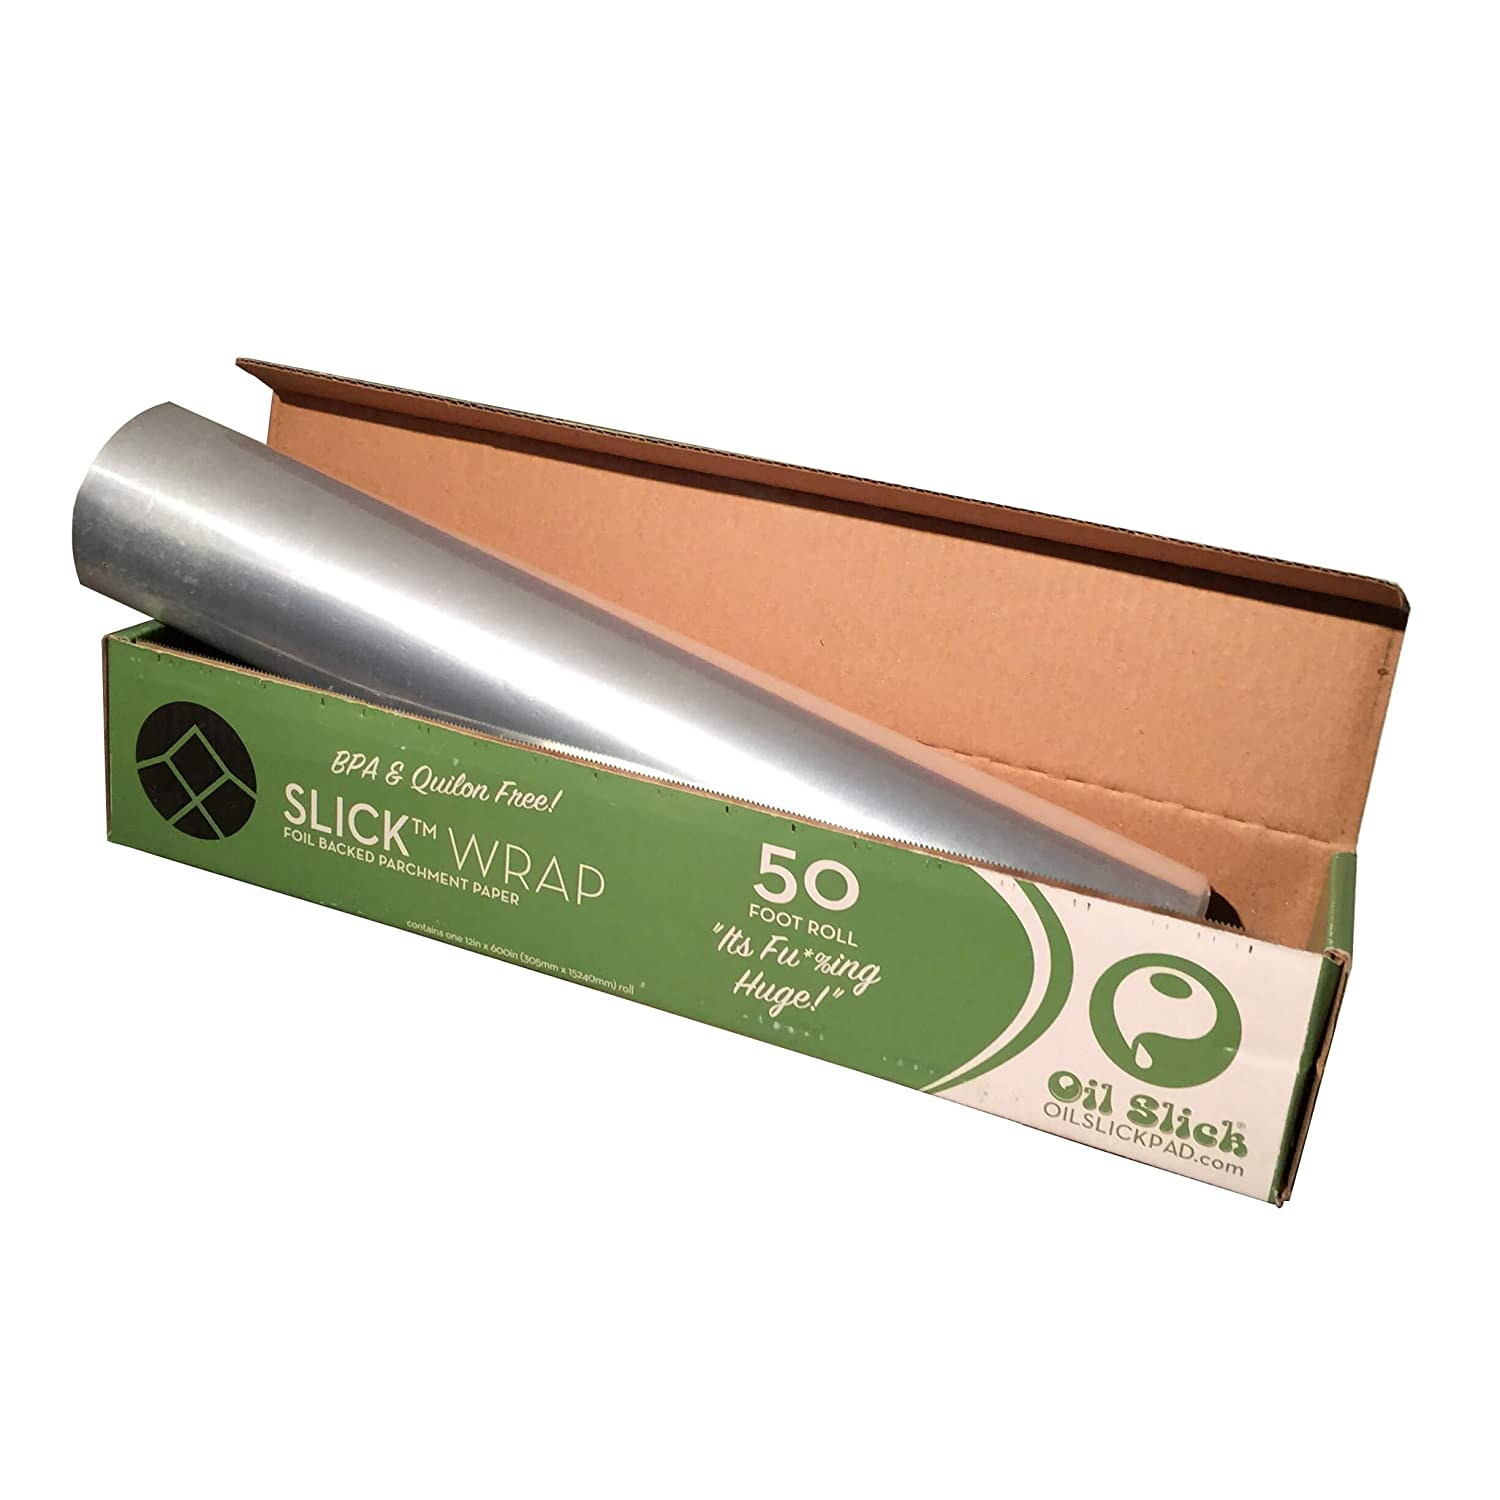 Oil Slick Wrap Foil Backed Parchment Paper 12x600 Alternative to Martha Wrap or Reynolds Pan Lining SYNCHKG073775